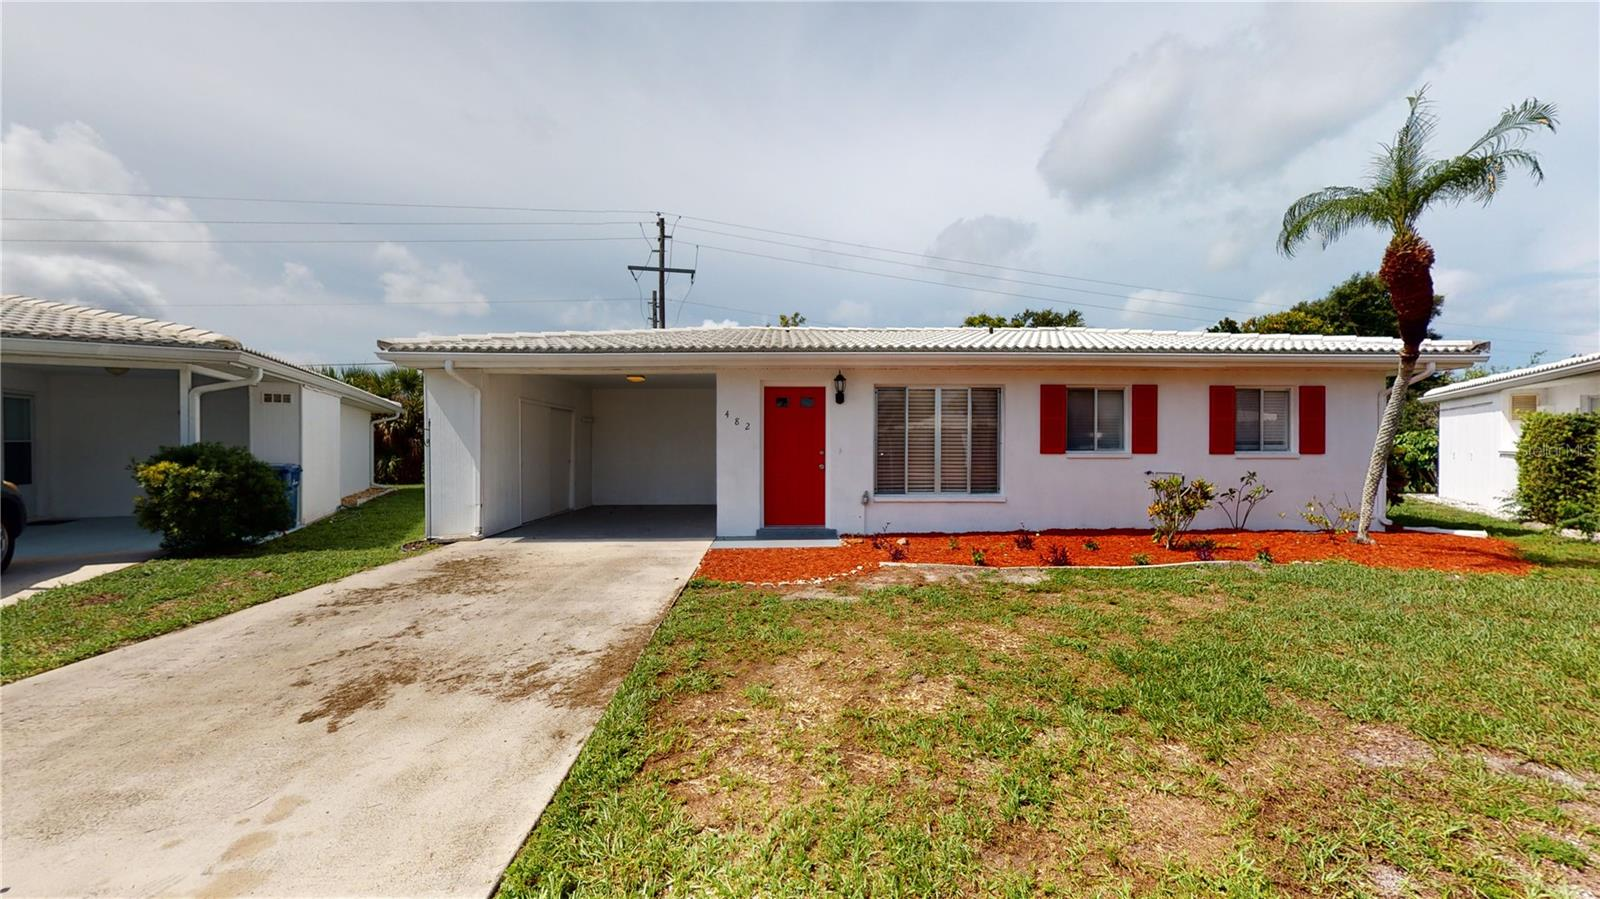 Primary photo of recently sold MLS# T3315260